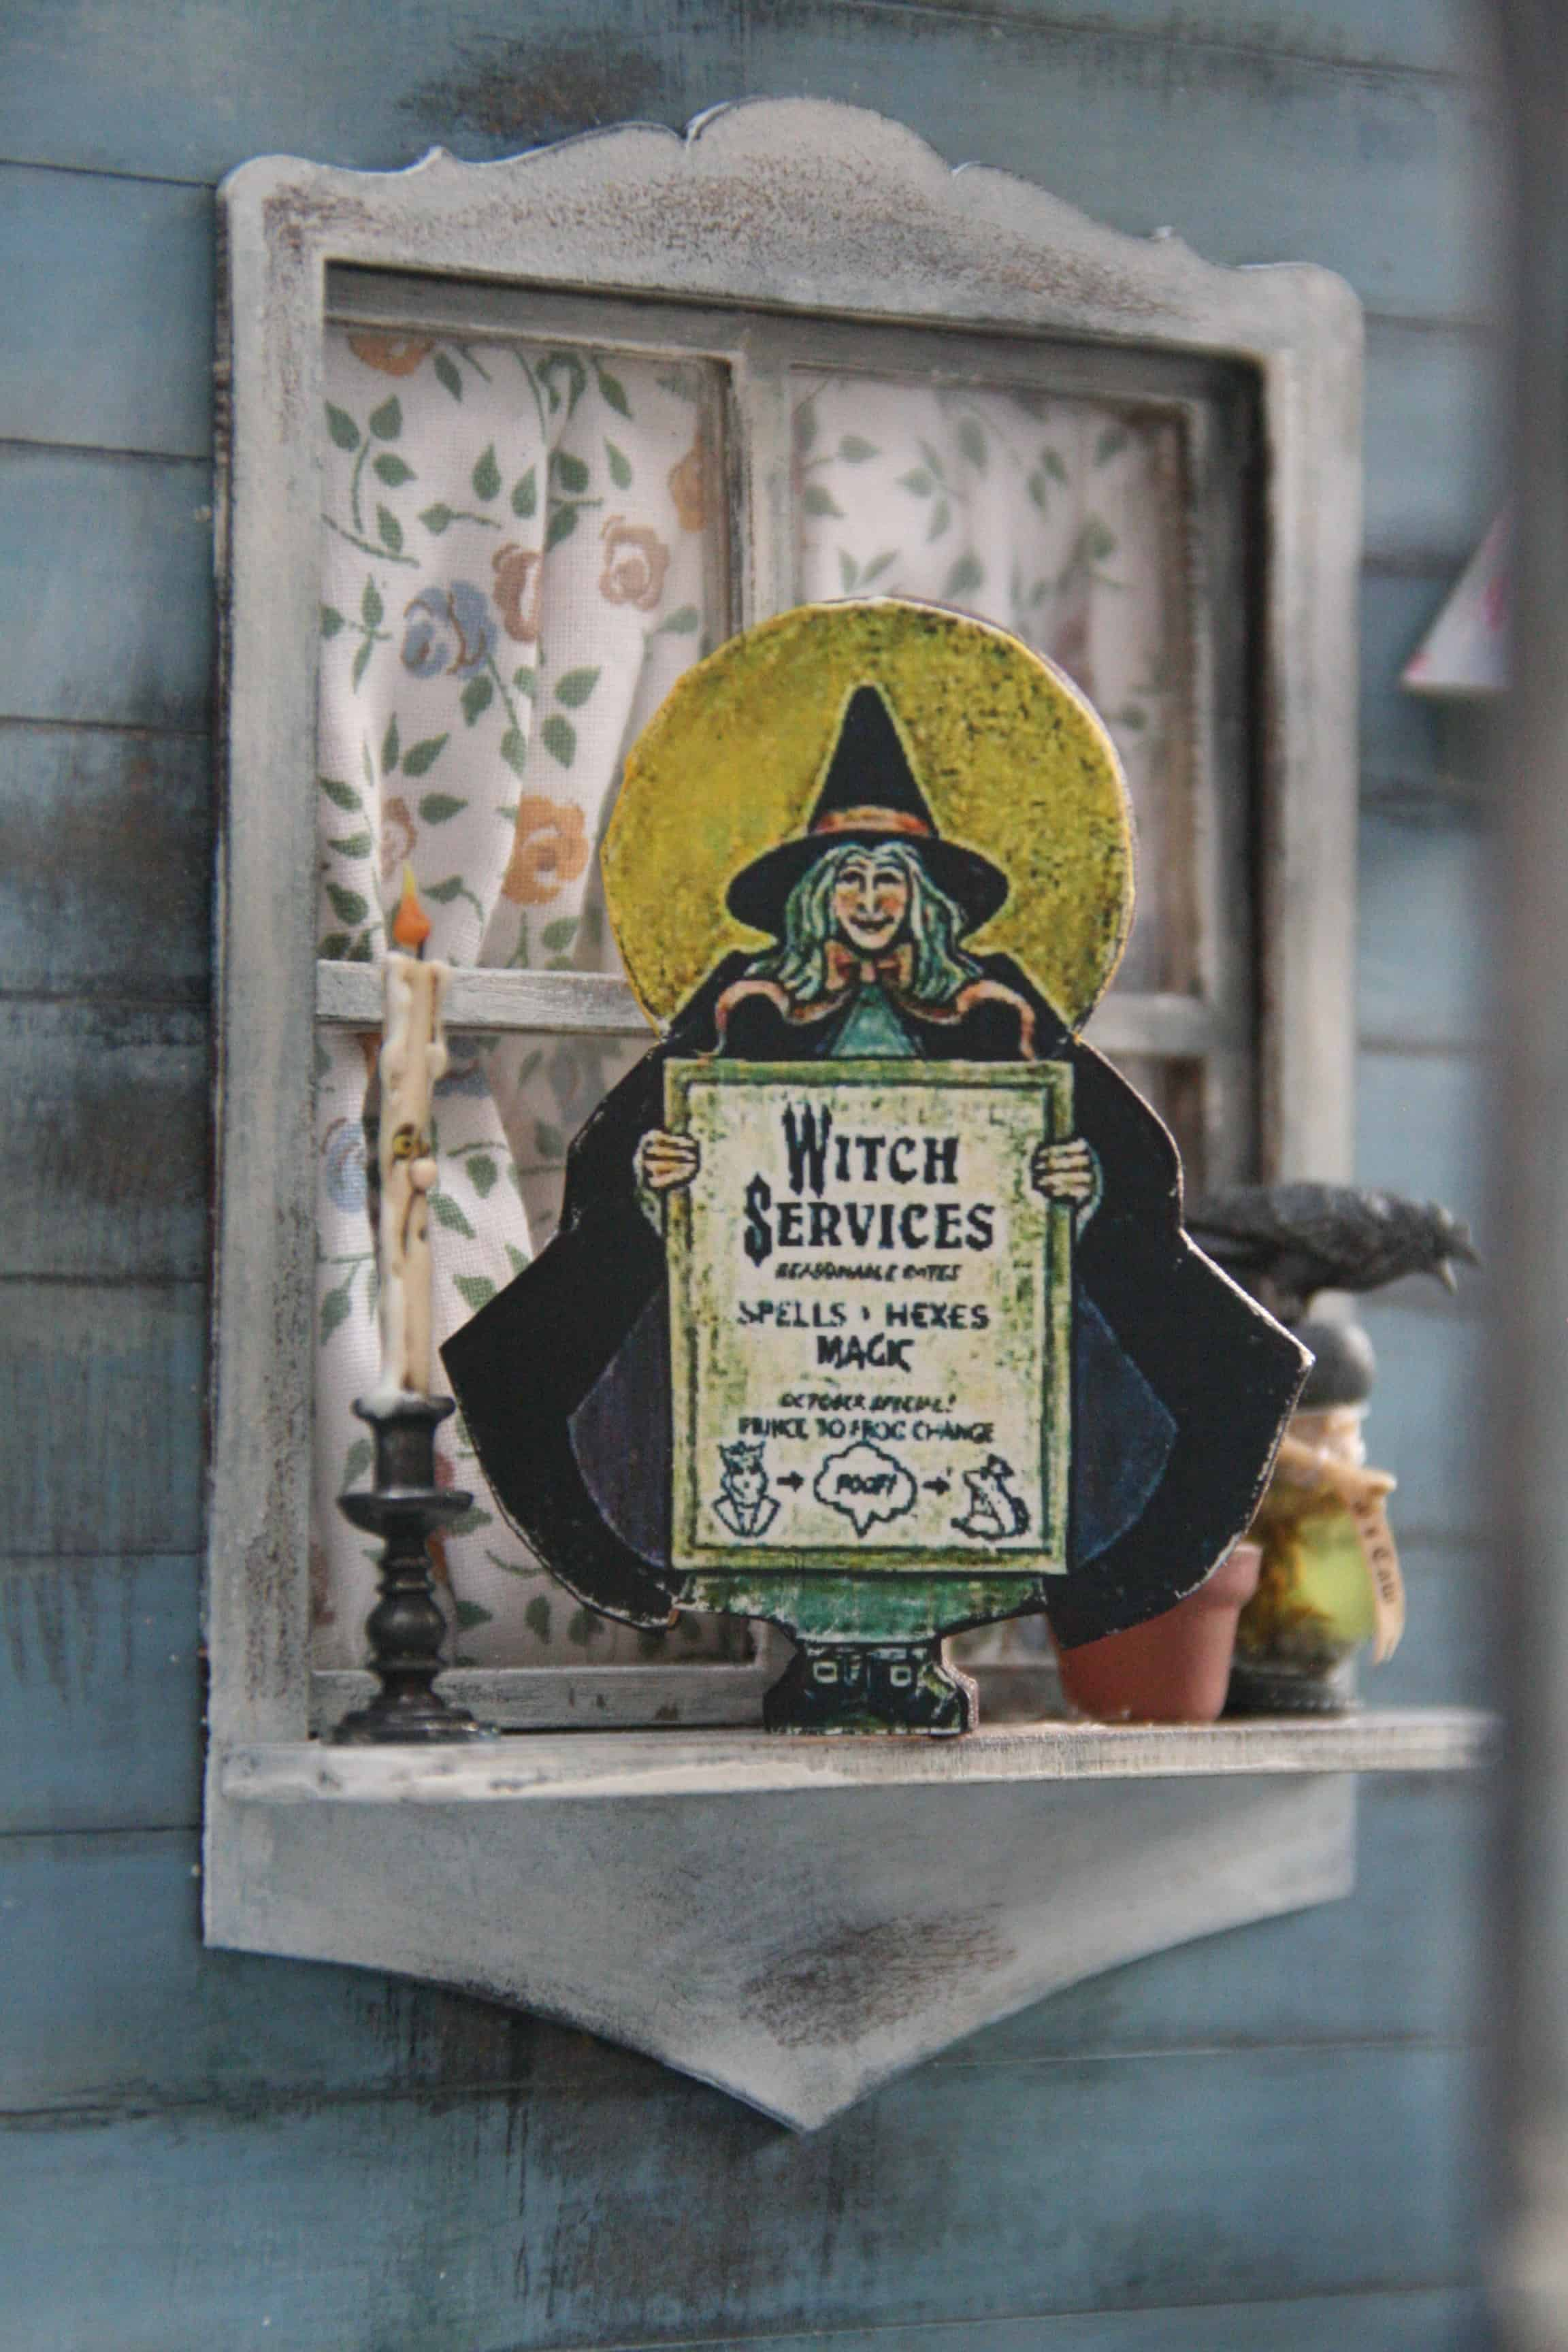 The Best Vintage Inspired Halloween Decorations from Amazon